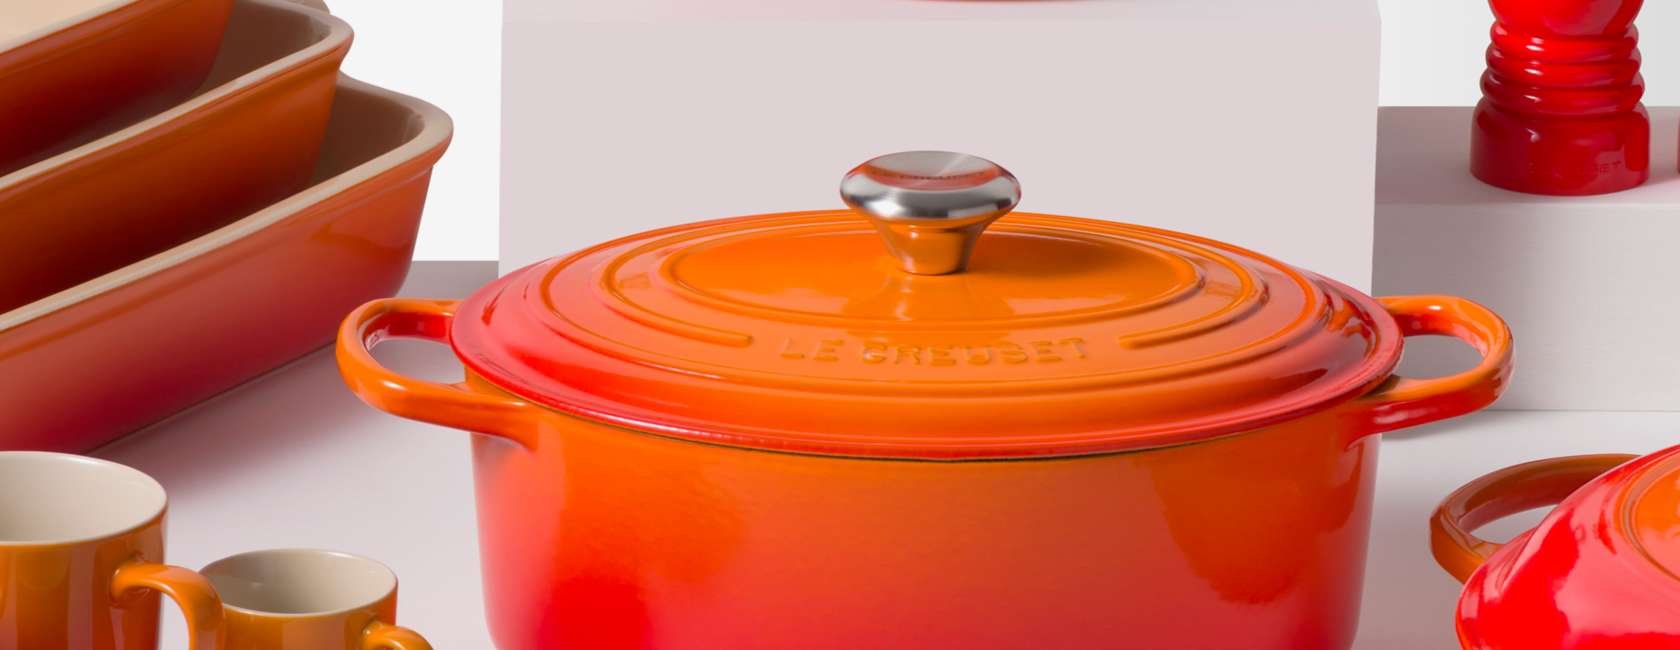 Le Creuset Cookware at John Lewis